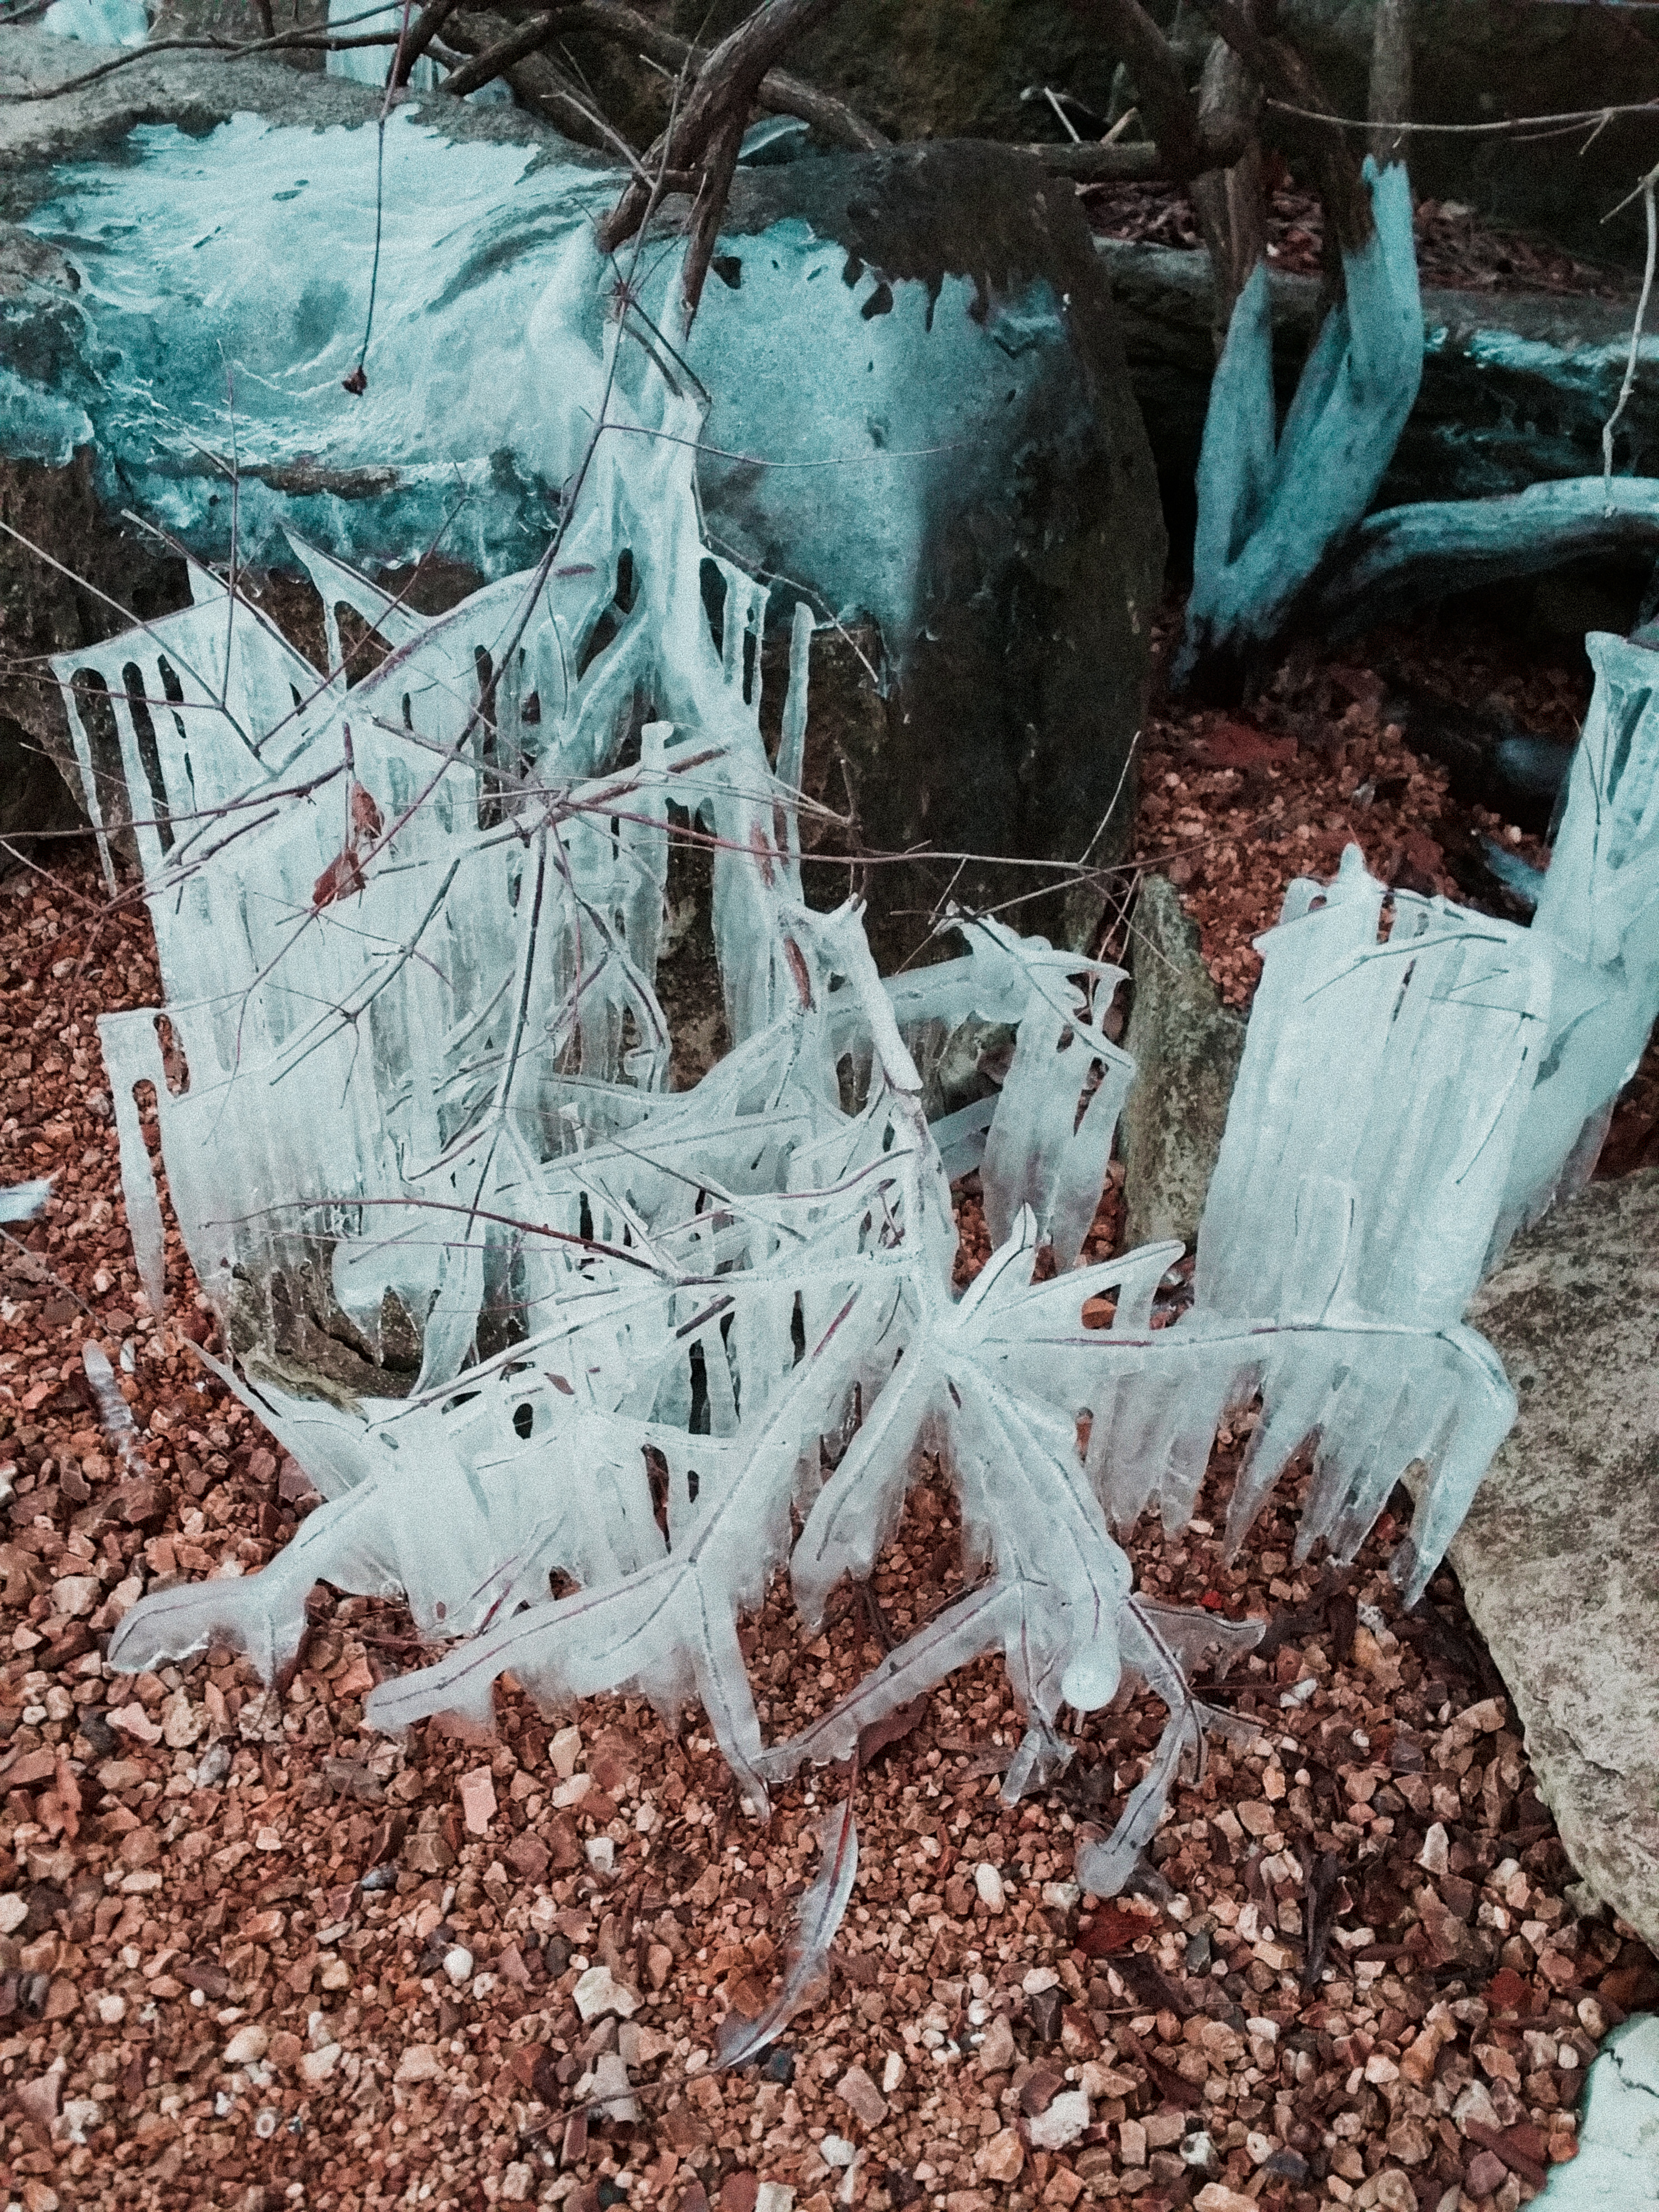 Ice Crystal Formations by the Lake at NBF State Park